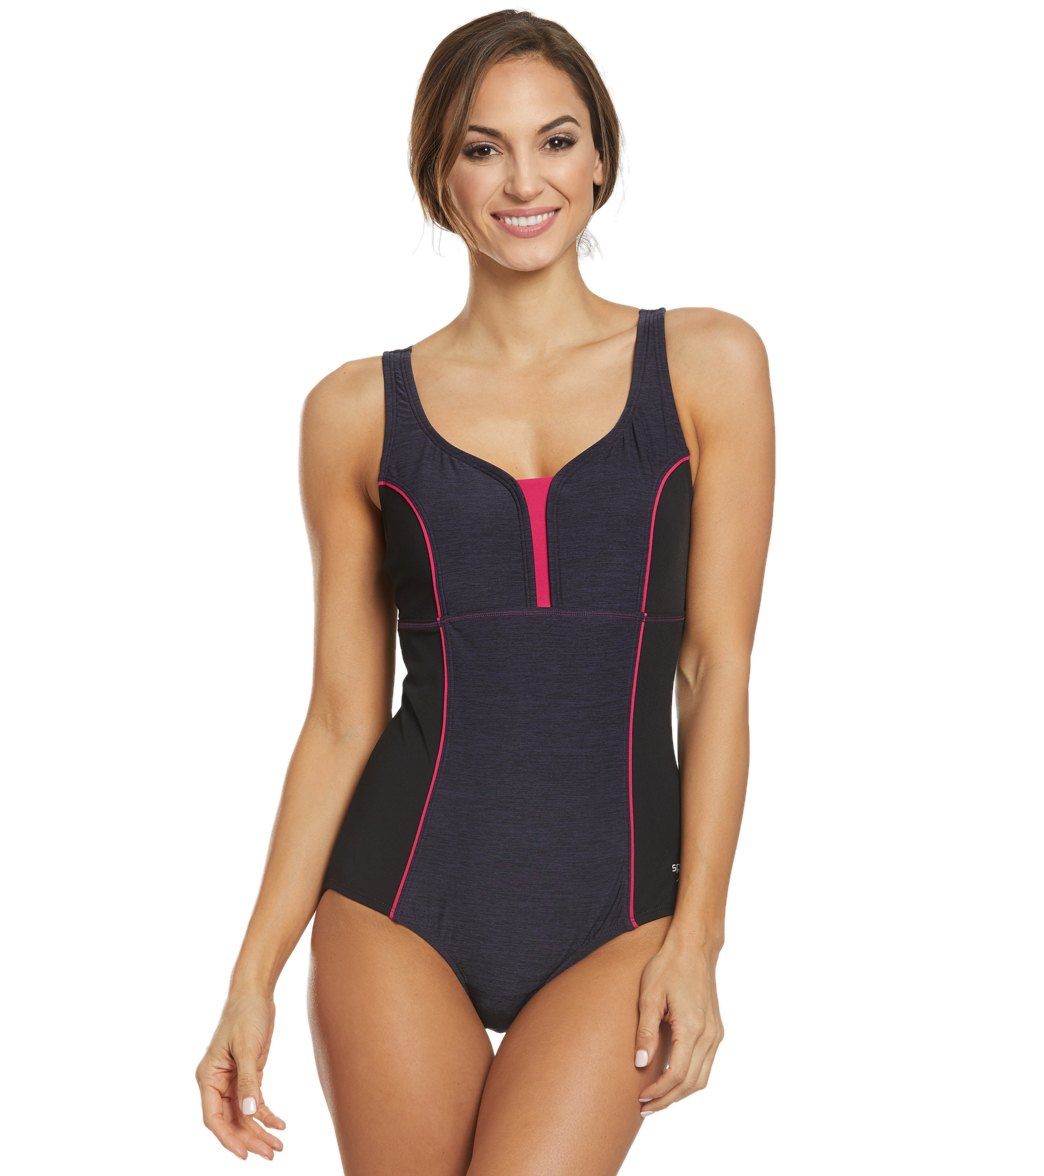 08f80aac22cc7 Speedo Texture Touchback One Piece Swimsuit at SwimOutlet.com - Free  Shipping